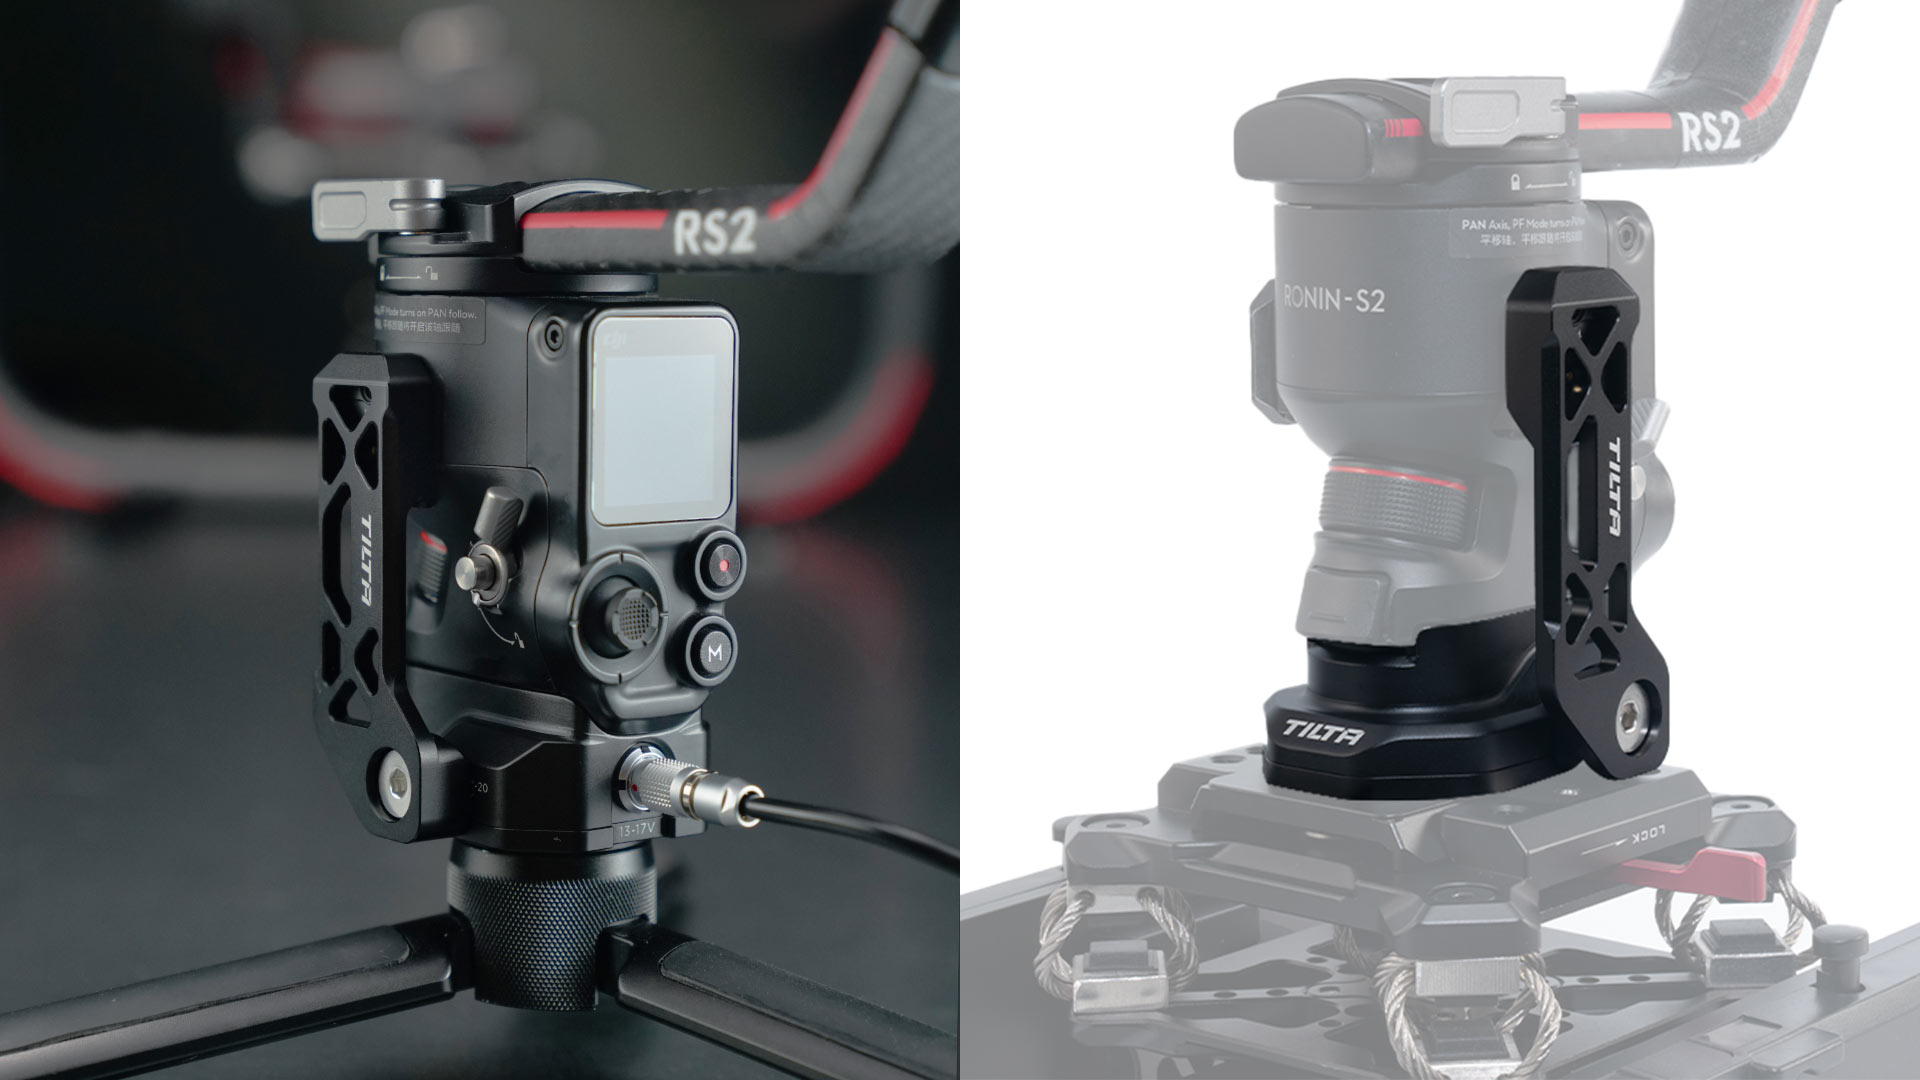 power supply baseplate for dji rs2